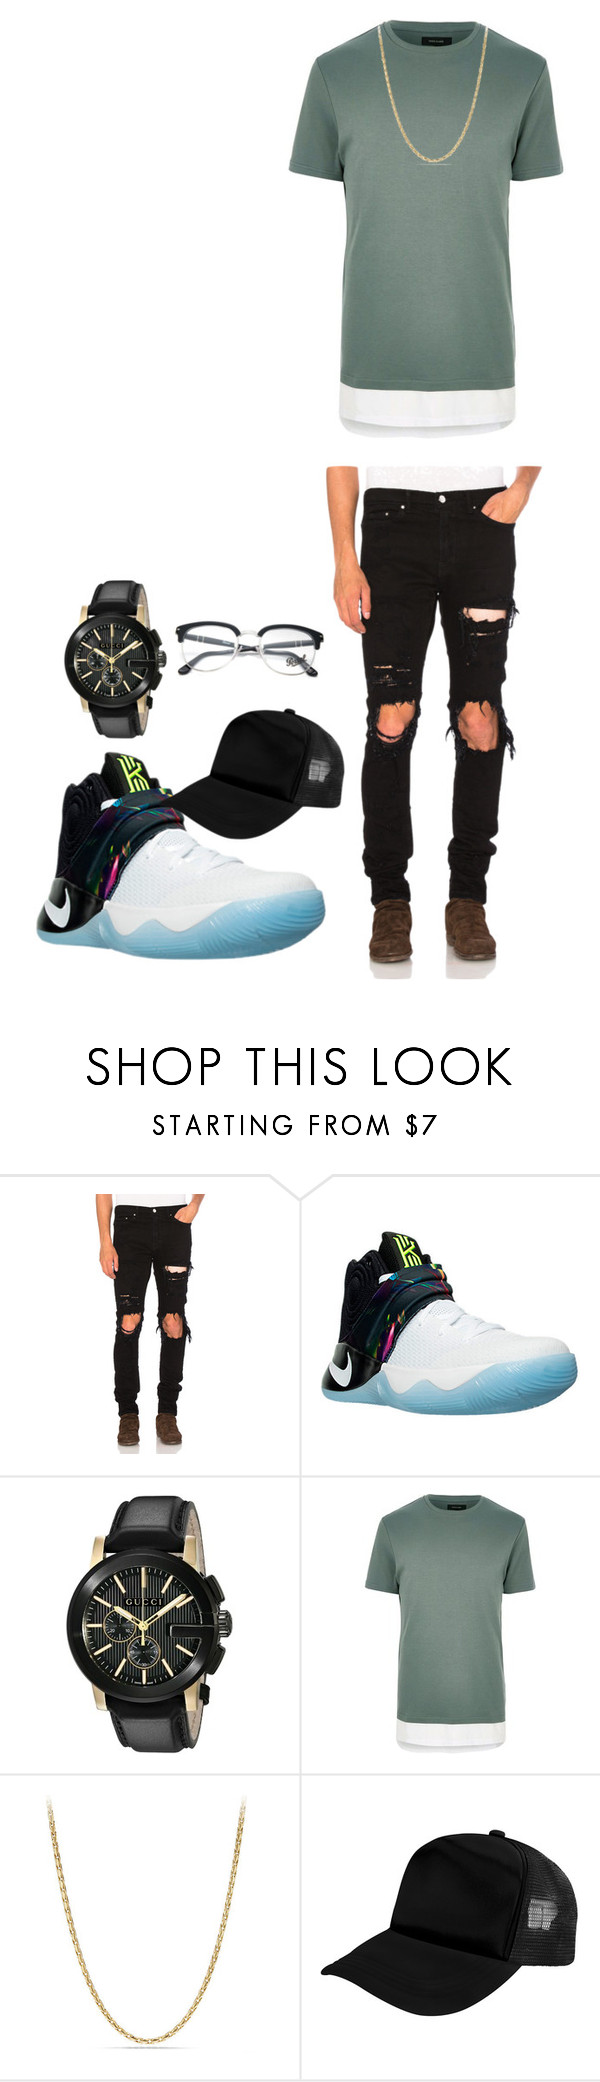 """""""Untitled #213"""" by alexisxxr ❤ liked on Polyvore featuring AMIRI, NIKE, Gucci, River Island, David Yurman, Zodaca and Persol"""